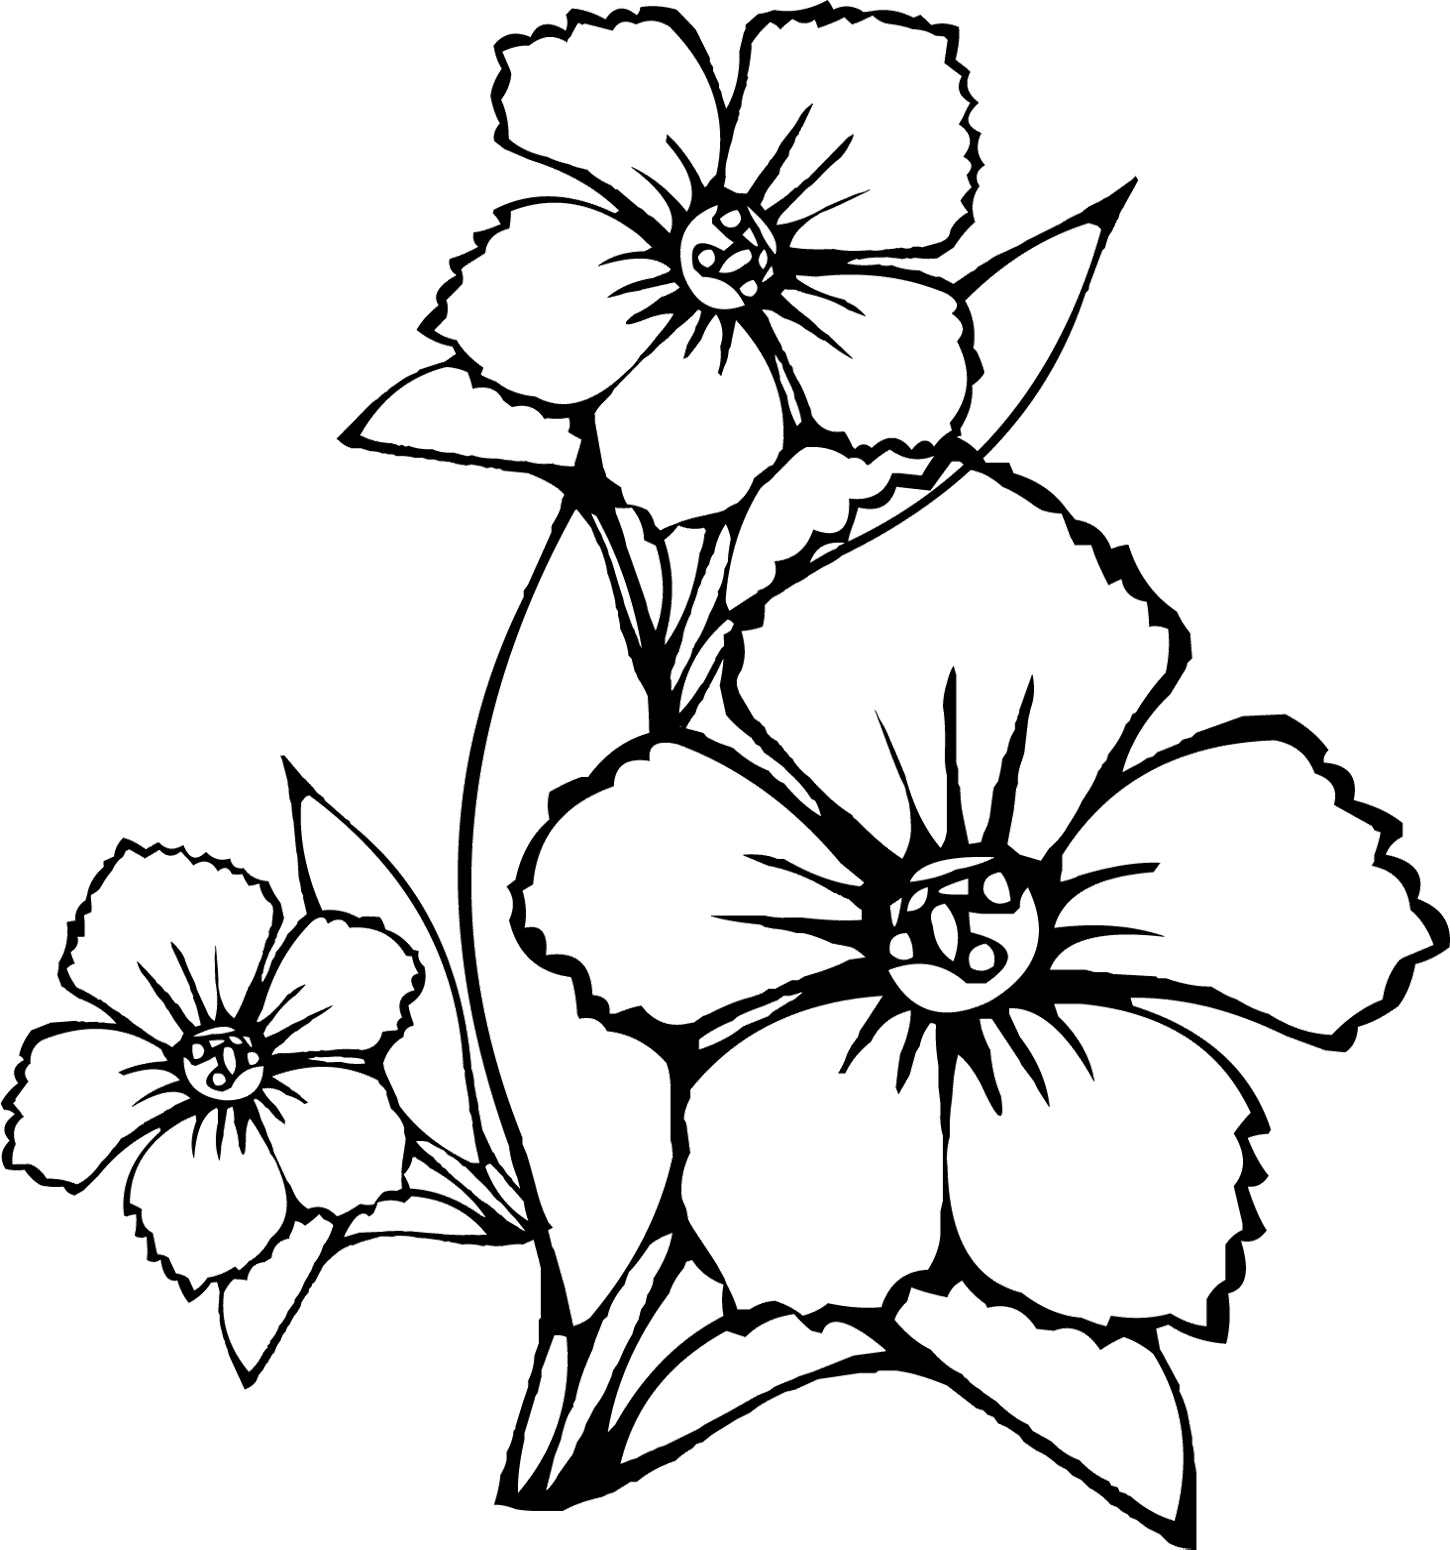 1450x1550 Liberal Pictures Of Flowers To Colour Drawing At Getdrawings Com